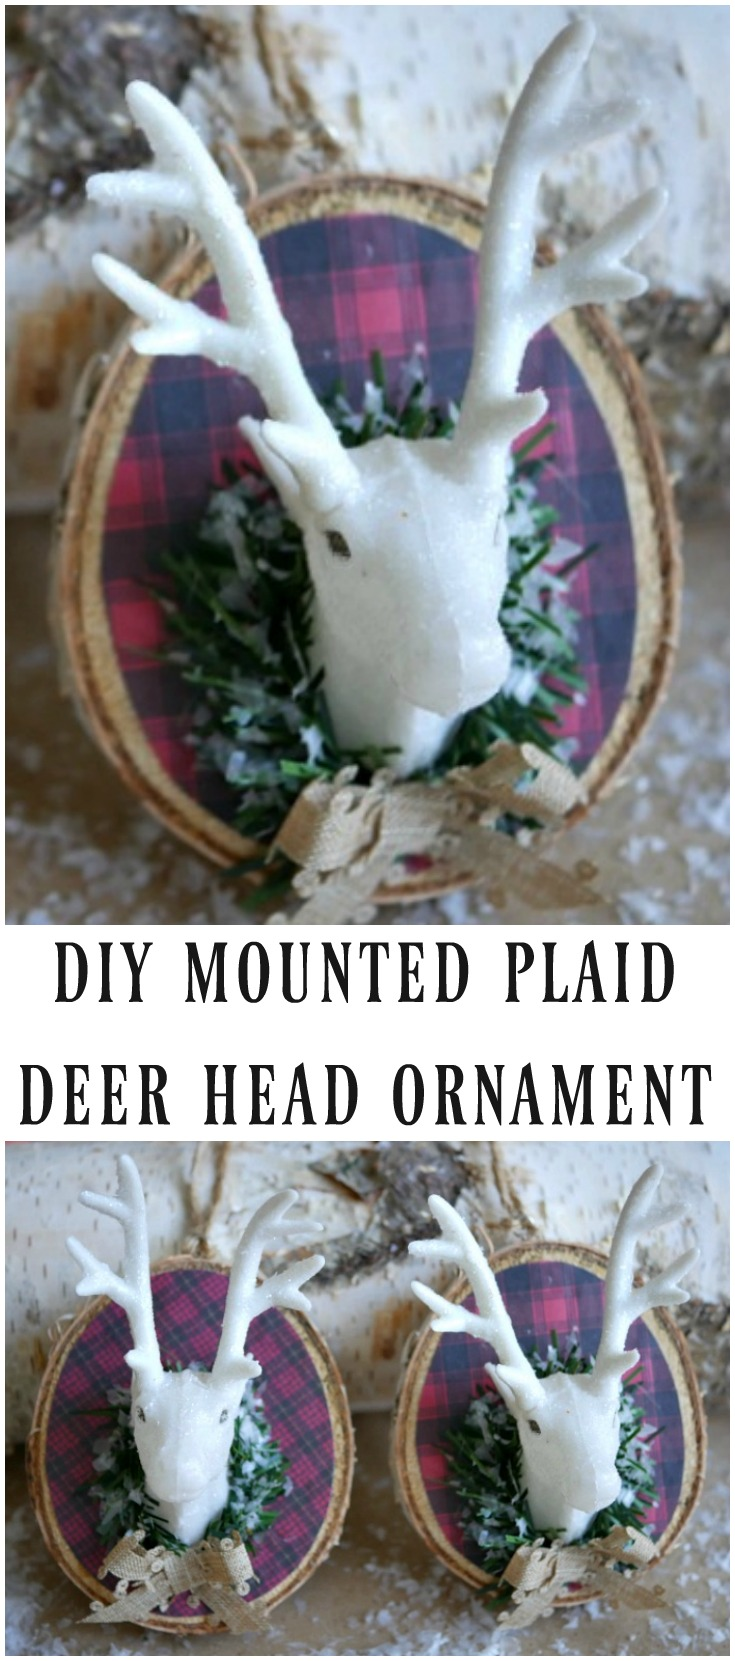 DIY Mountd Plaid Deer Head Ornament